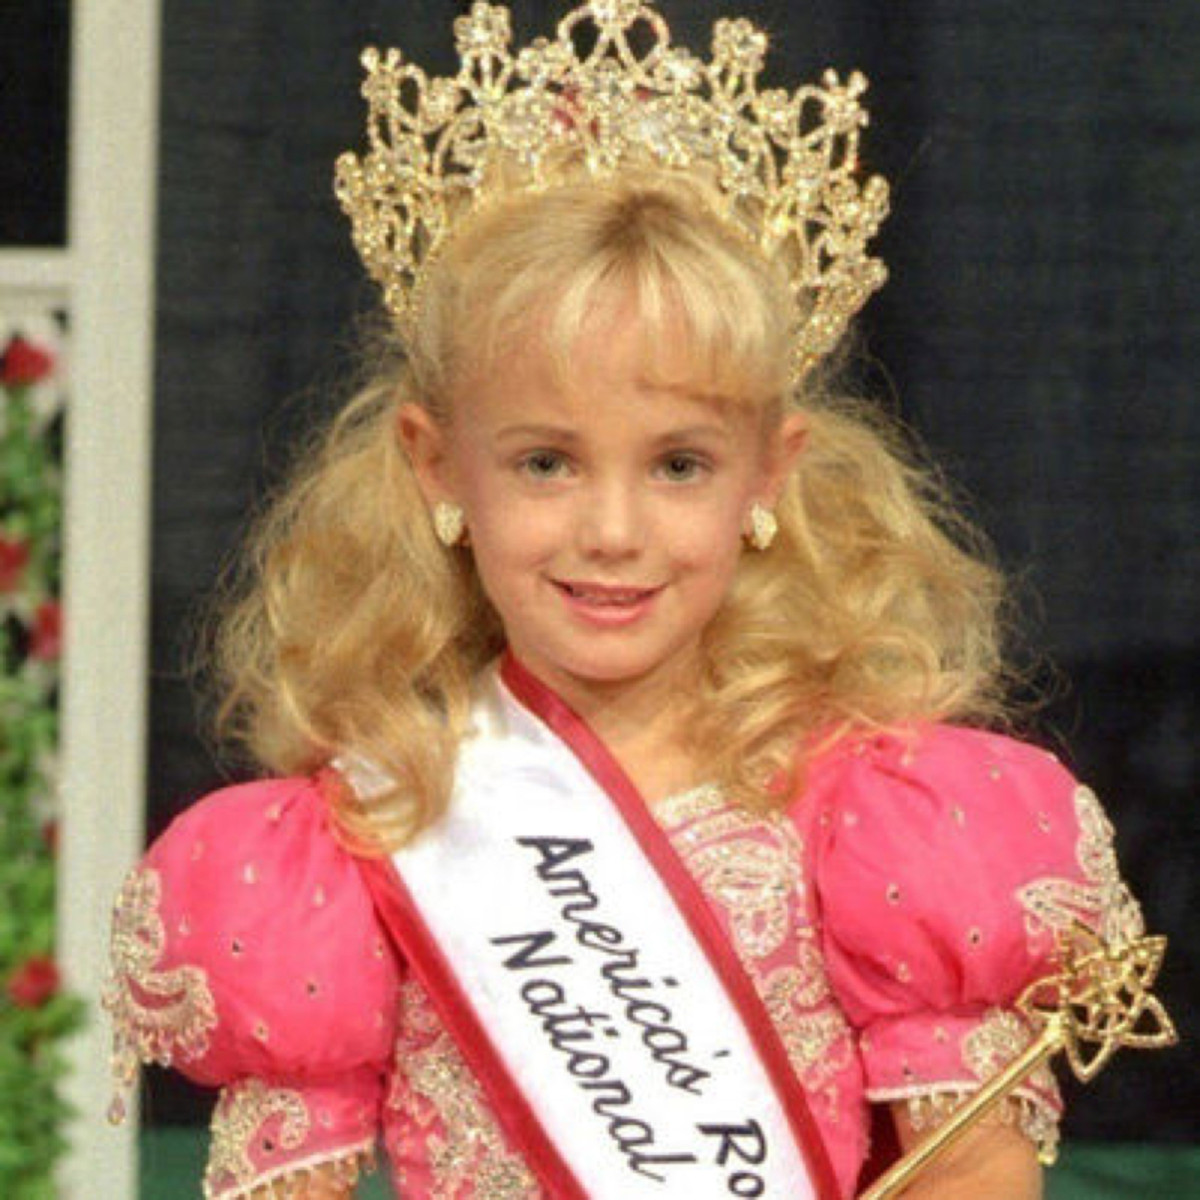 jonben girls Here is some background information about the jonben-t ramsey  colorado  state all-star kids cover girl, america's royale miss, and.